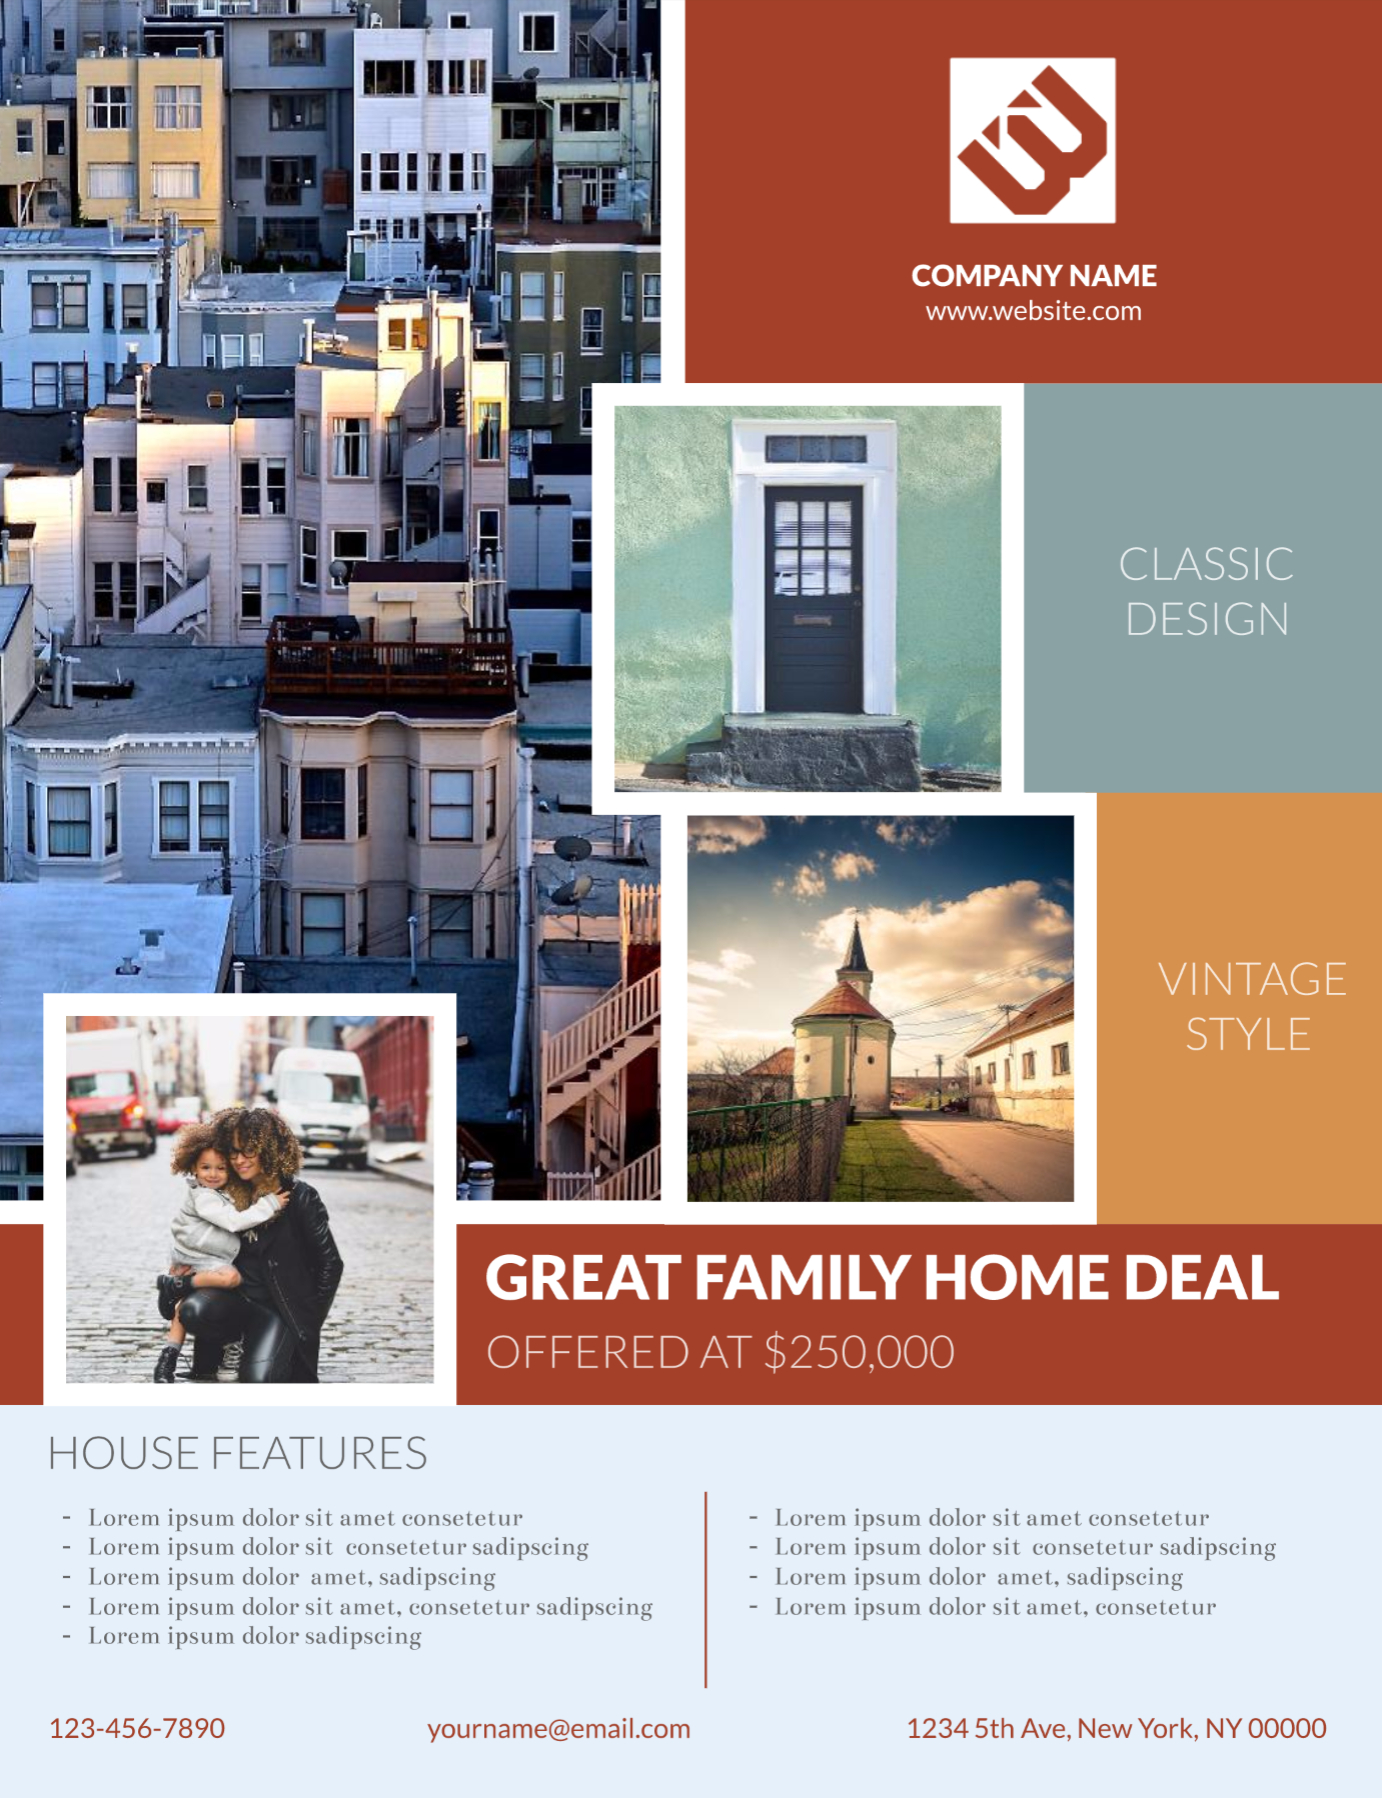 Bungalow Real Estate Flyer Template | Real Estate Marketing Ideas - Free Printable Real Estate Flyer Templates